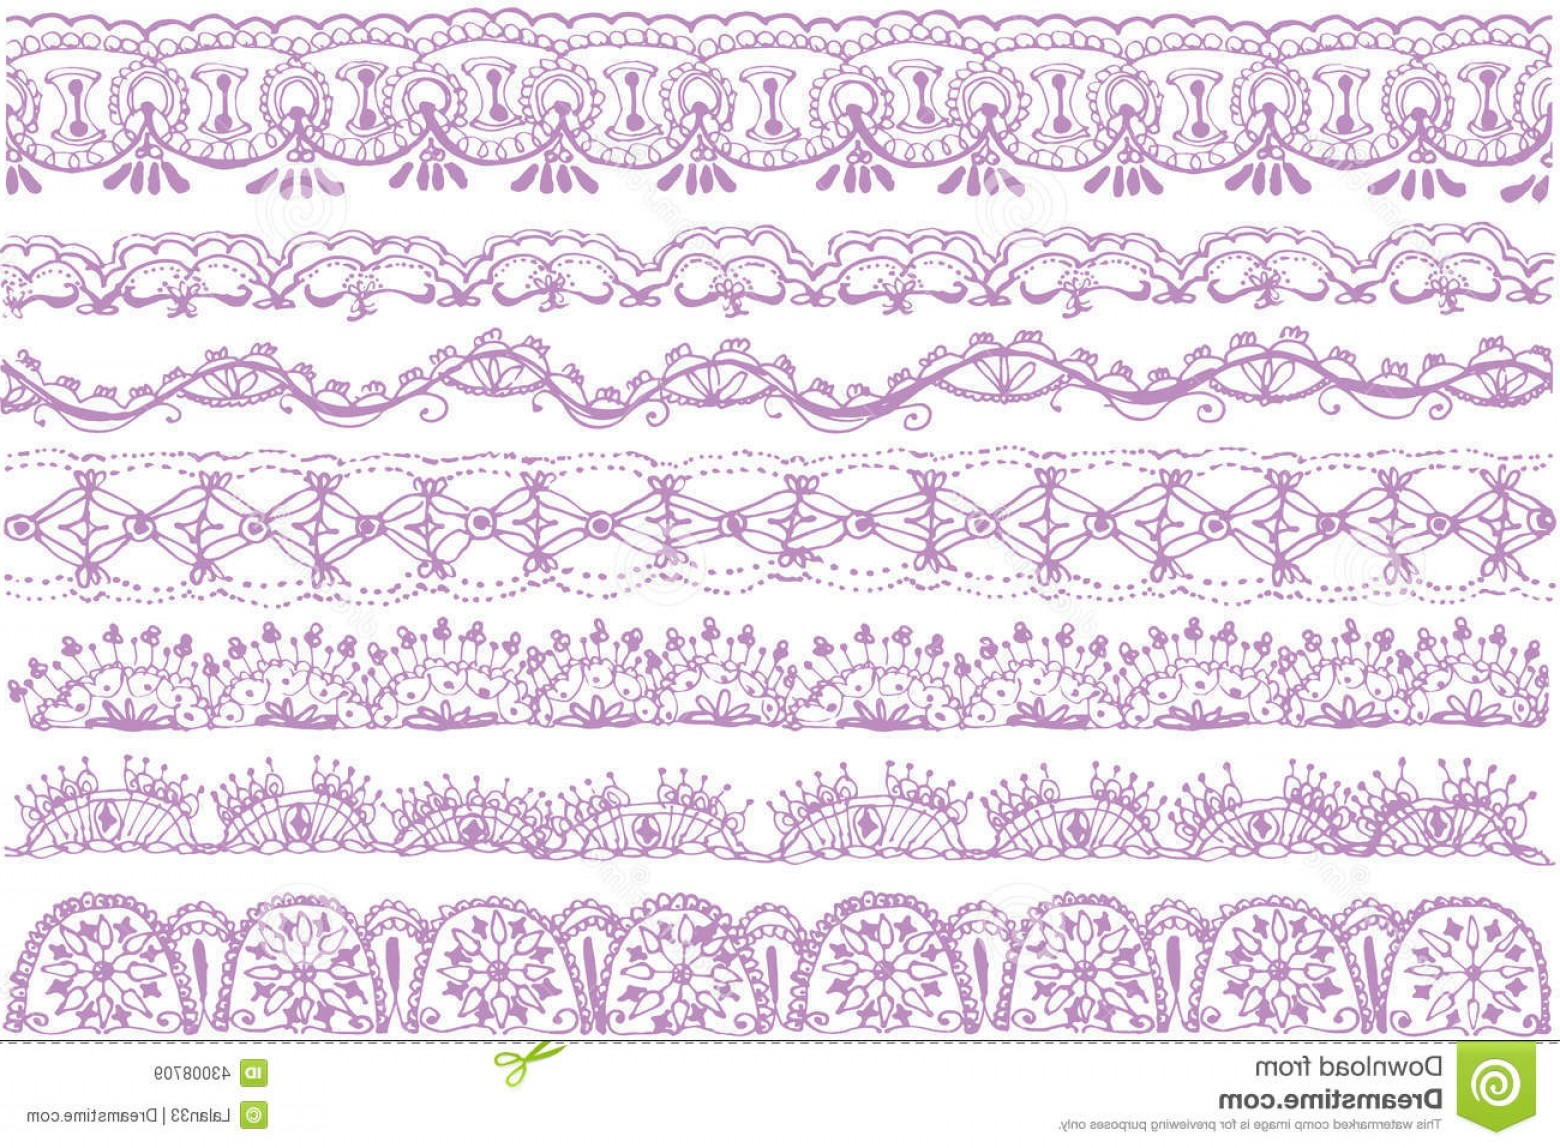 Floral Lace Trim Vector: Stock Illustration Lace Trims Set Trim Textures Image